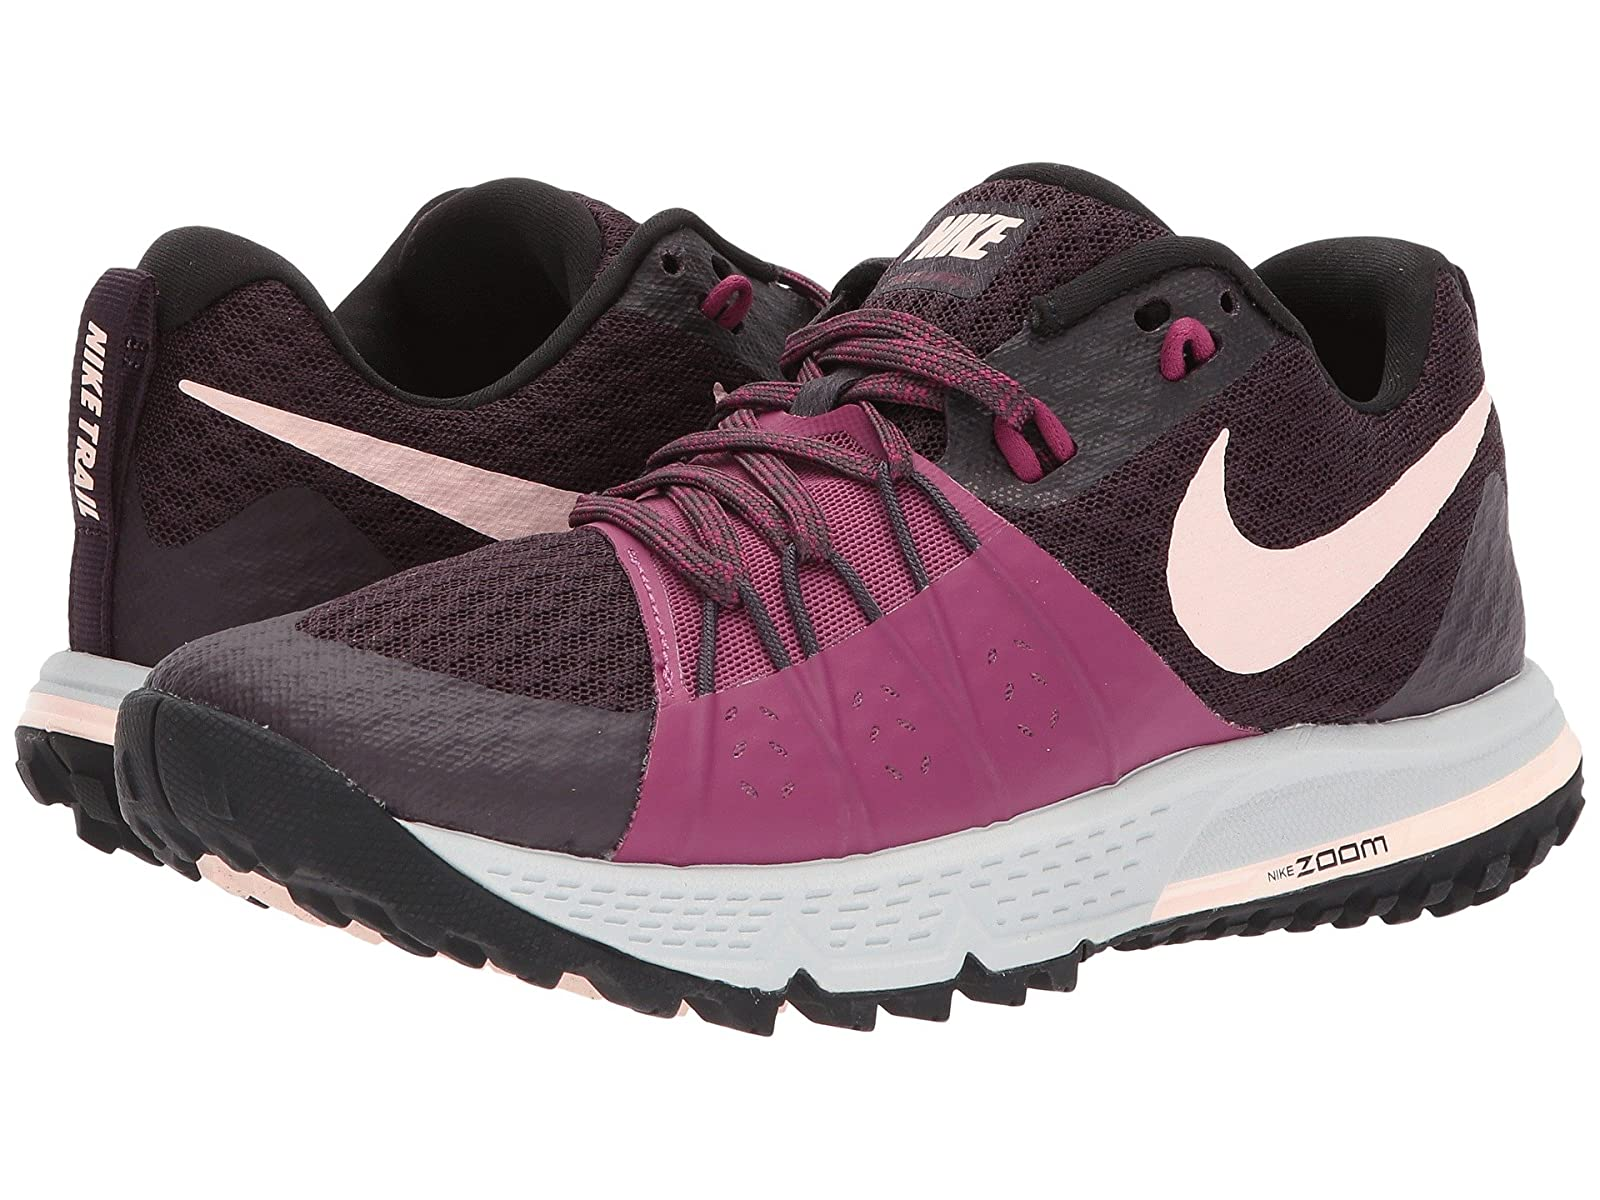 Man's/Woman's: Nike Air Matching Zoom Wildhorse 4 : Matching Air In Color a03f2b